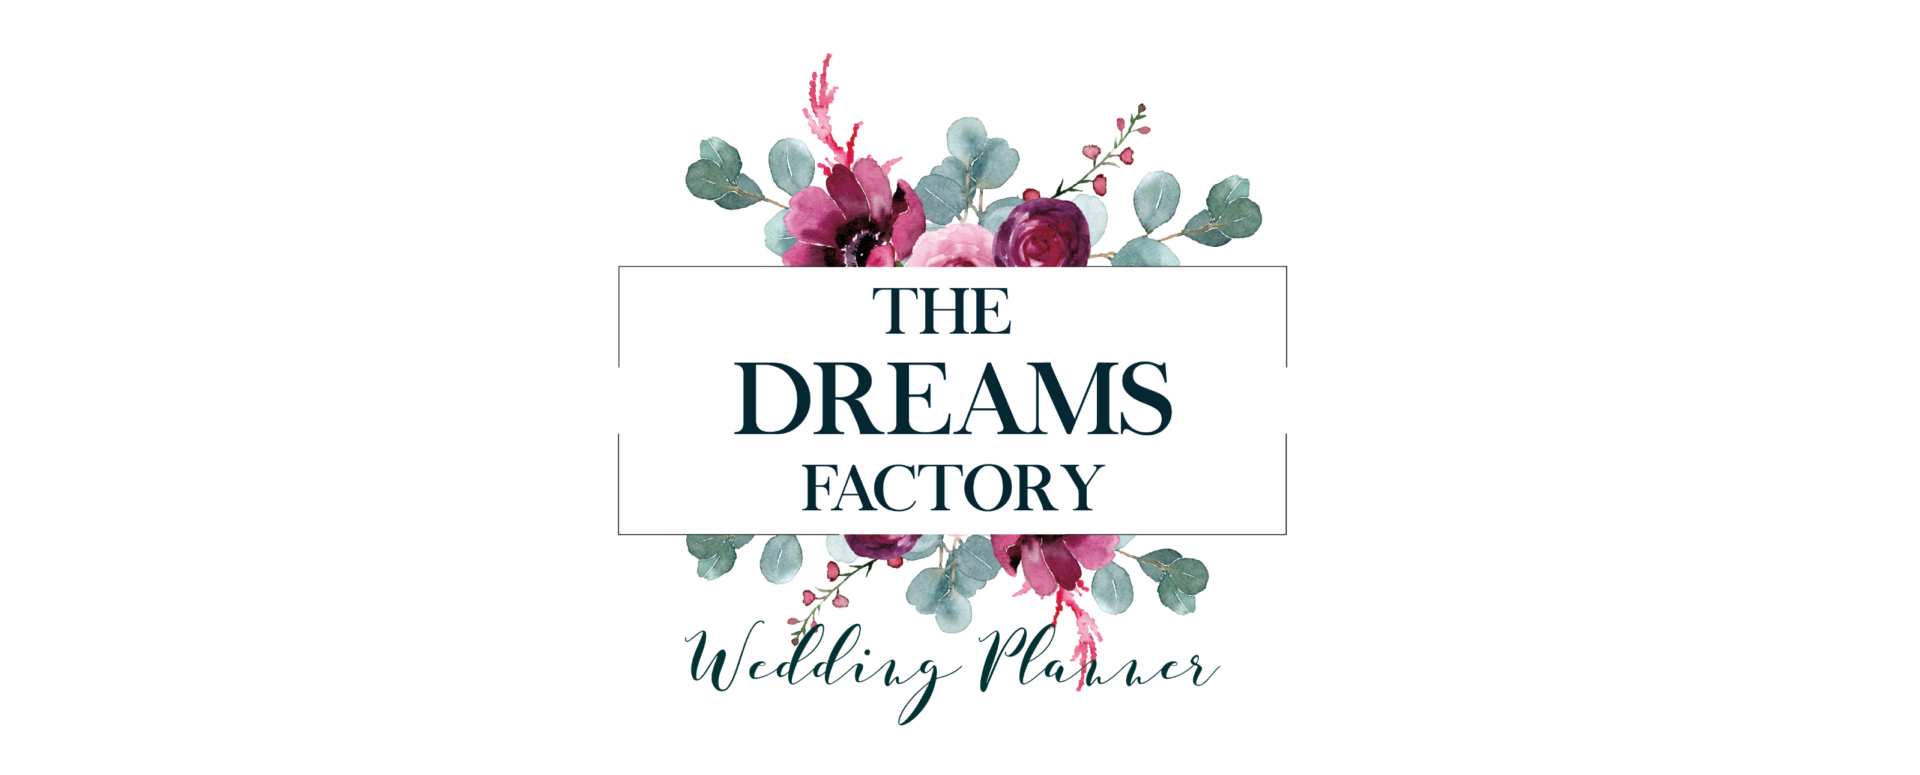 The Dreams Factory